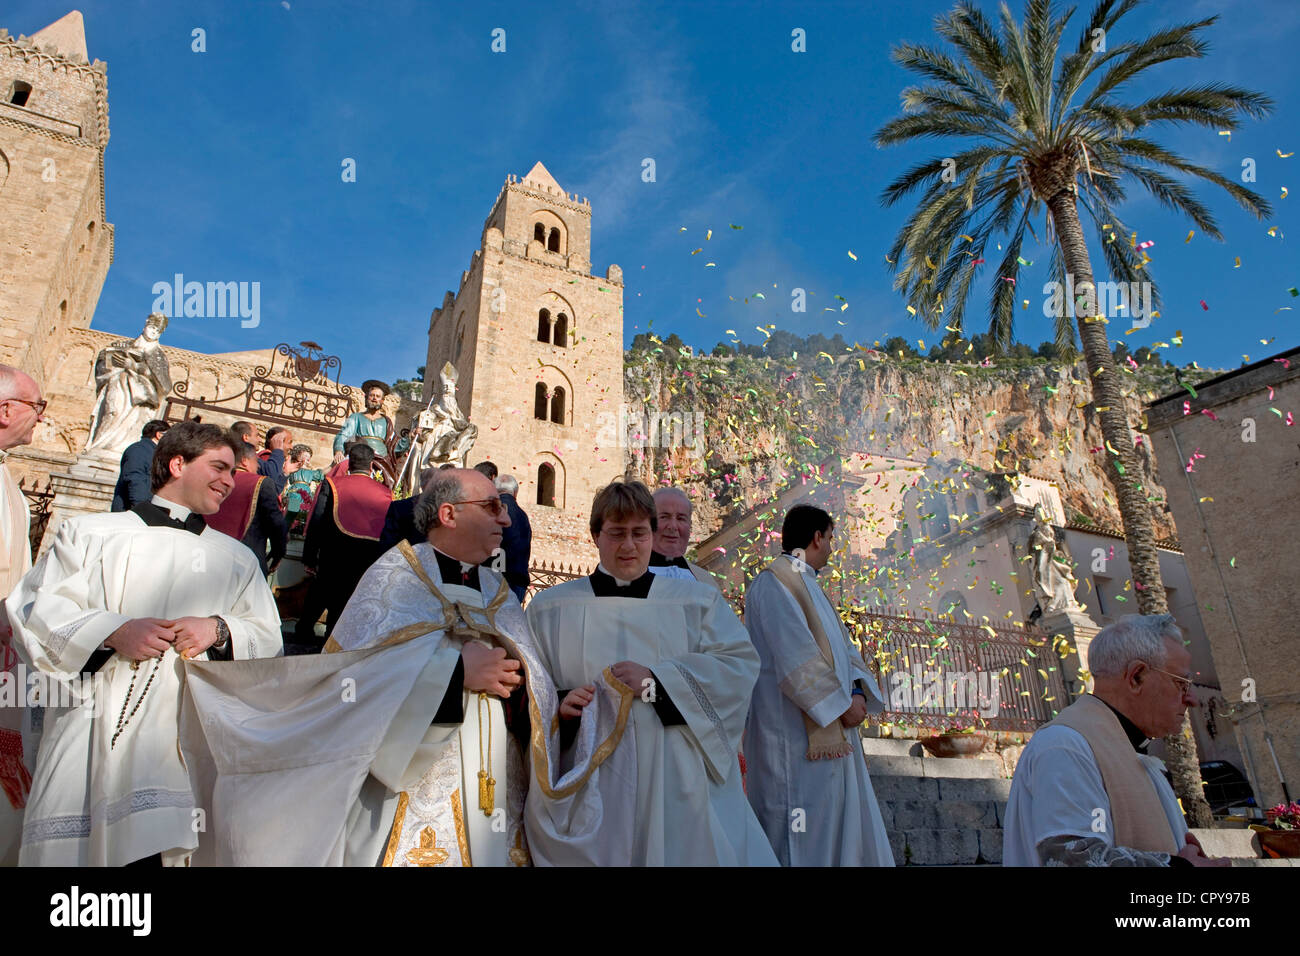 Italy, Sicily, Cefalu, the Great procession of San Giuseppe in march - Stock Image